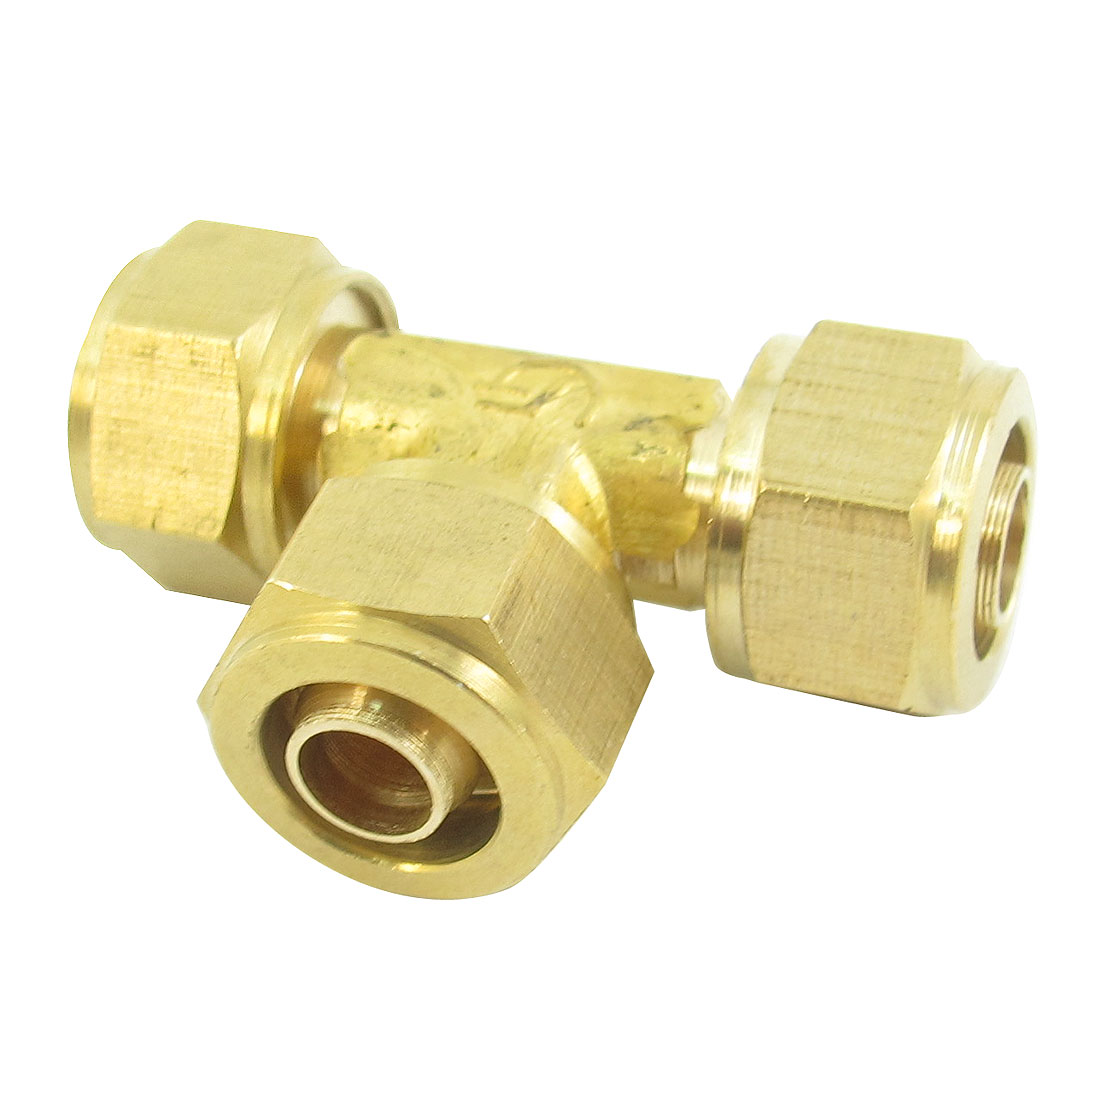 10mm Tube Inner Dia T Shaped 3 Ways Brass Air Pneumatic Quick Fitting Connector Coupler Joint